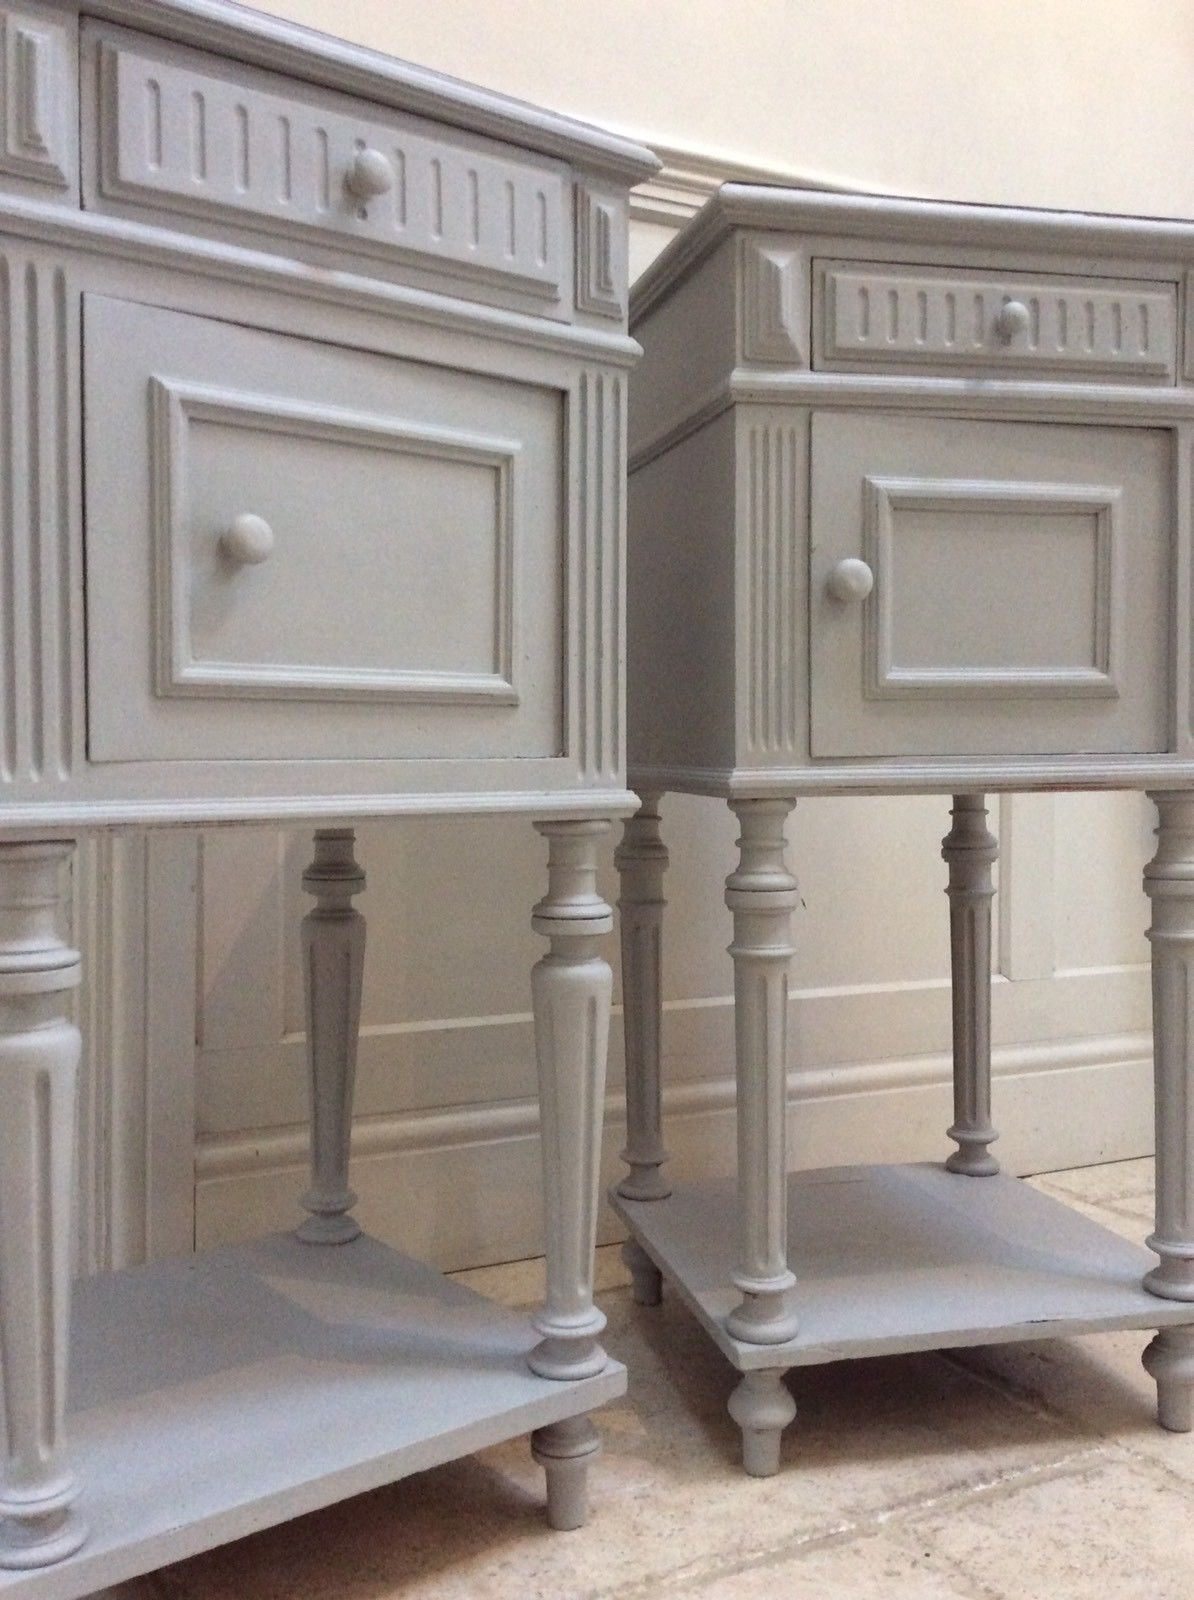 Almost Pair of Antique French Painted Grey Bedside Table Cabinets Pot  Cupboards - Pair Of Antique French Painted Grey Bedside Table Cabinets Pot Cupboards